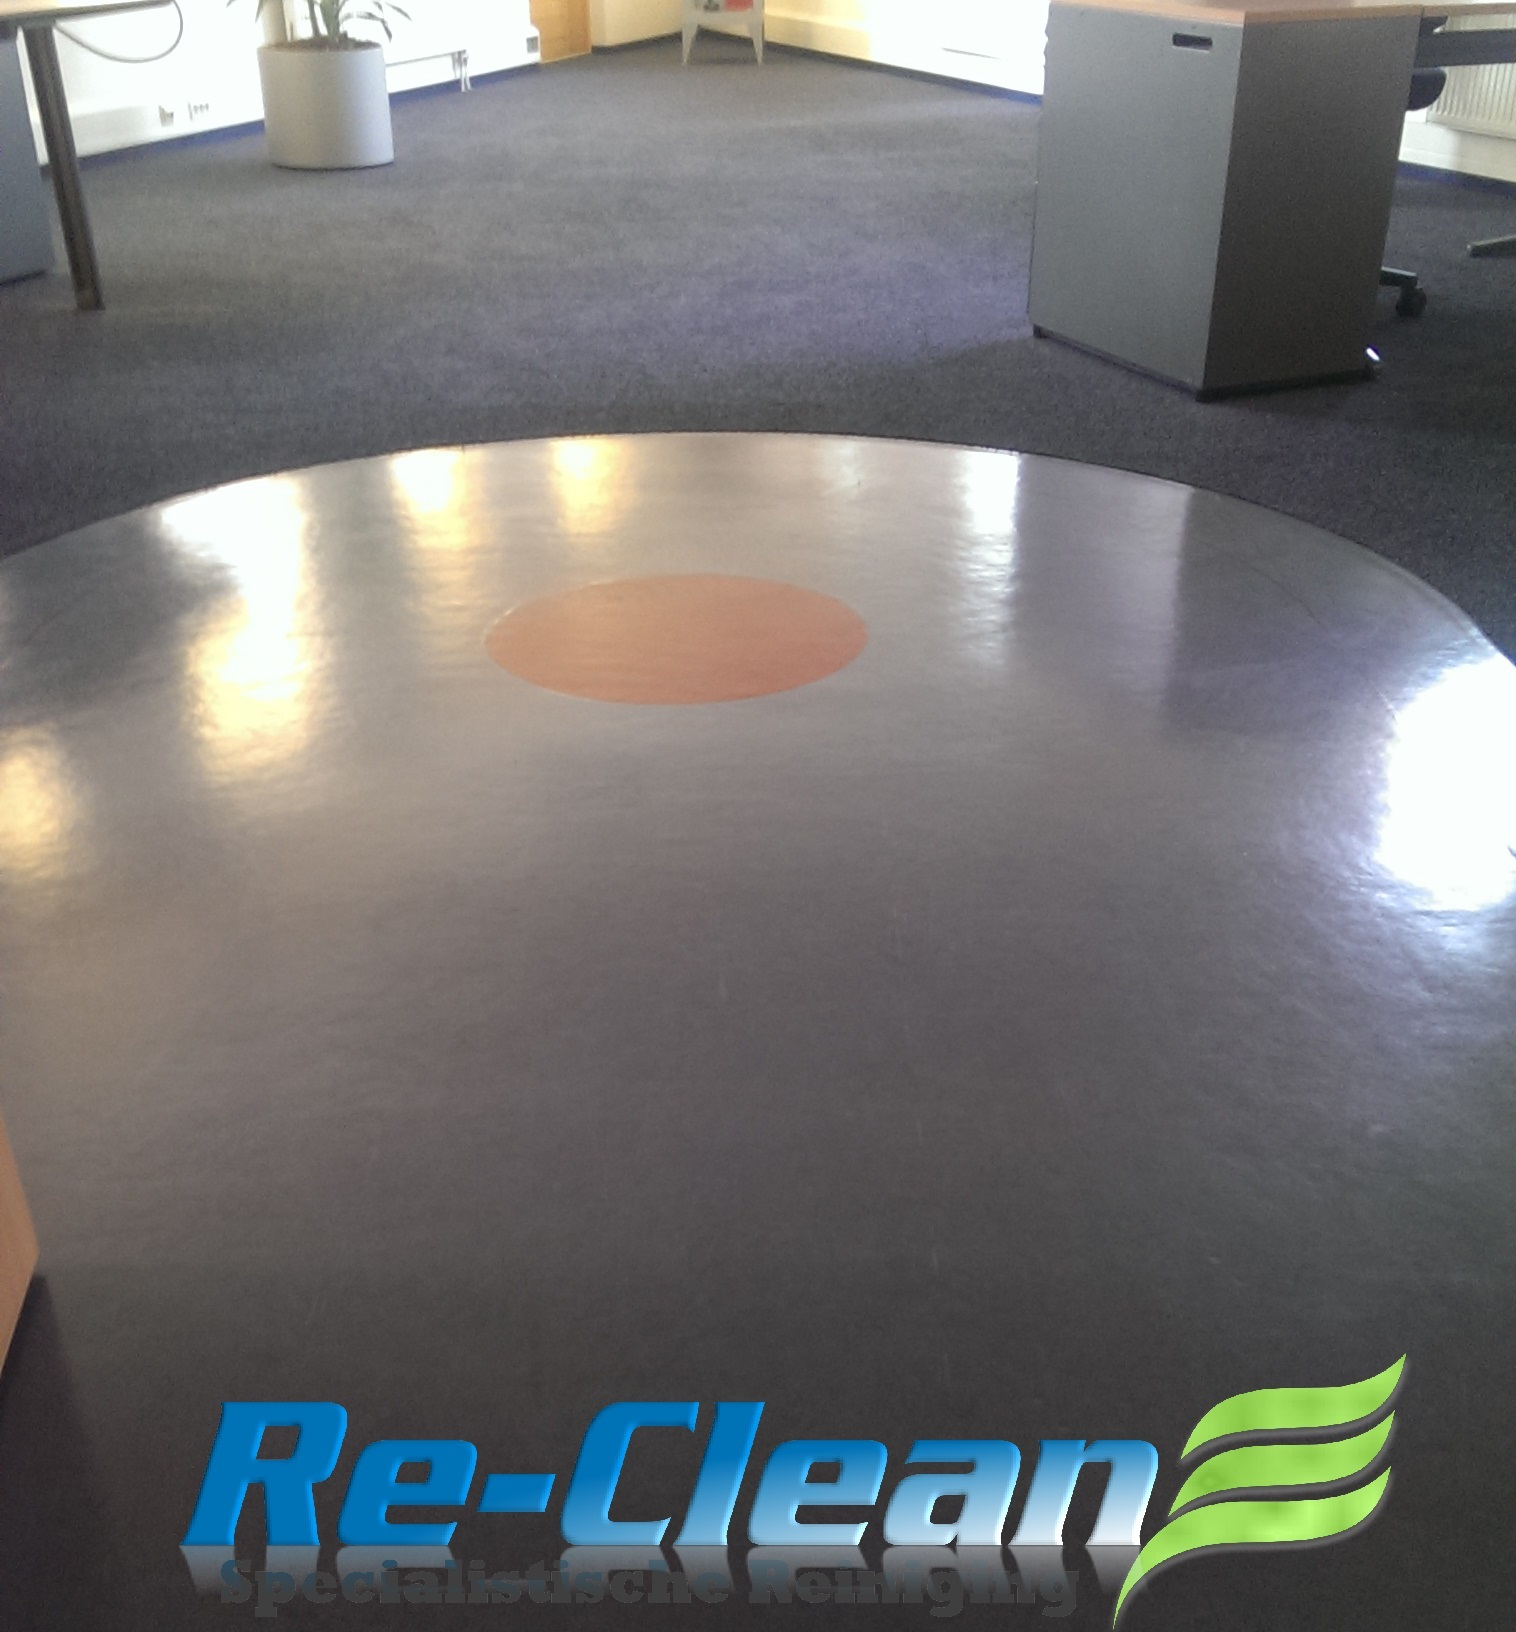 Re clean specialistische reiniging for Meubilair reinigen